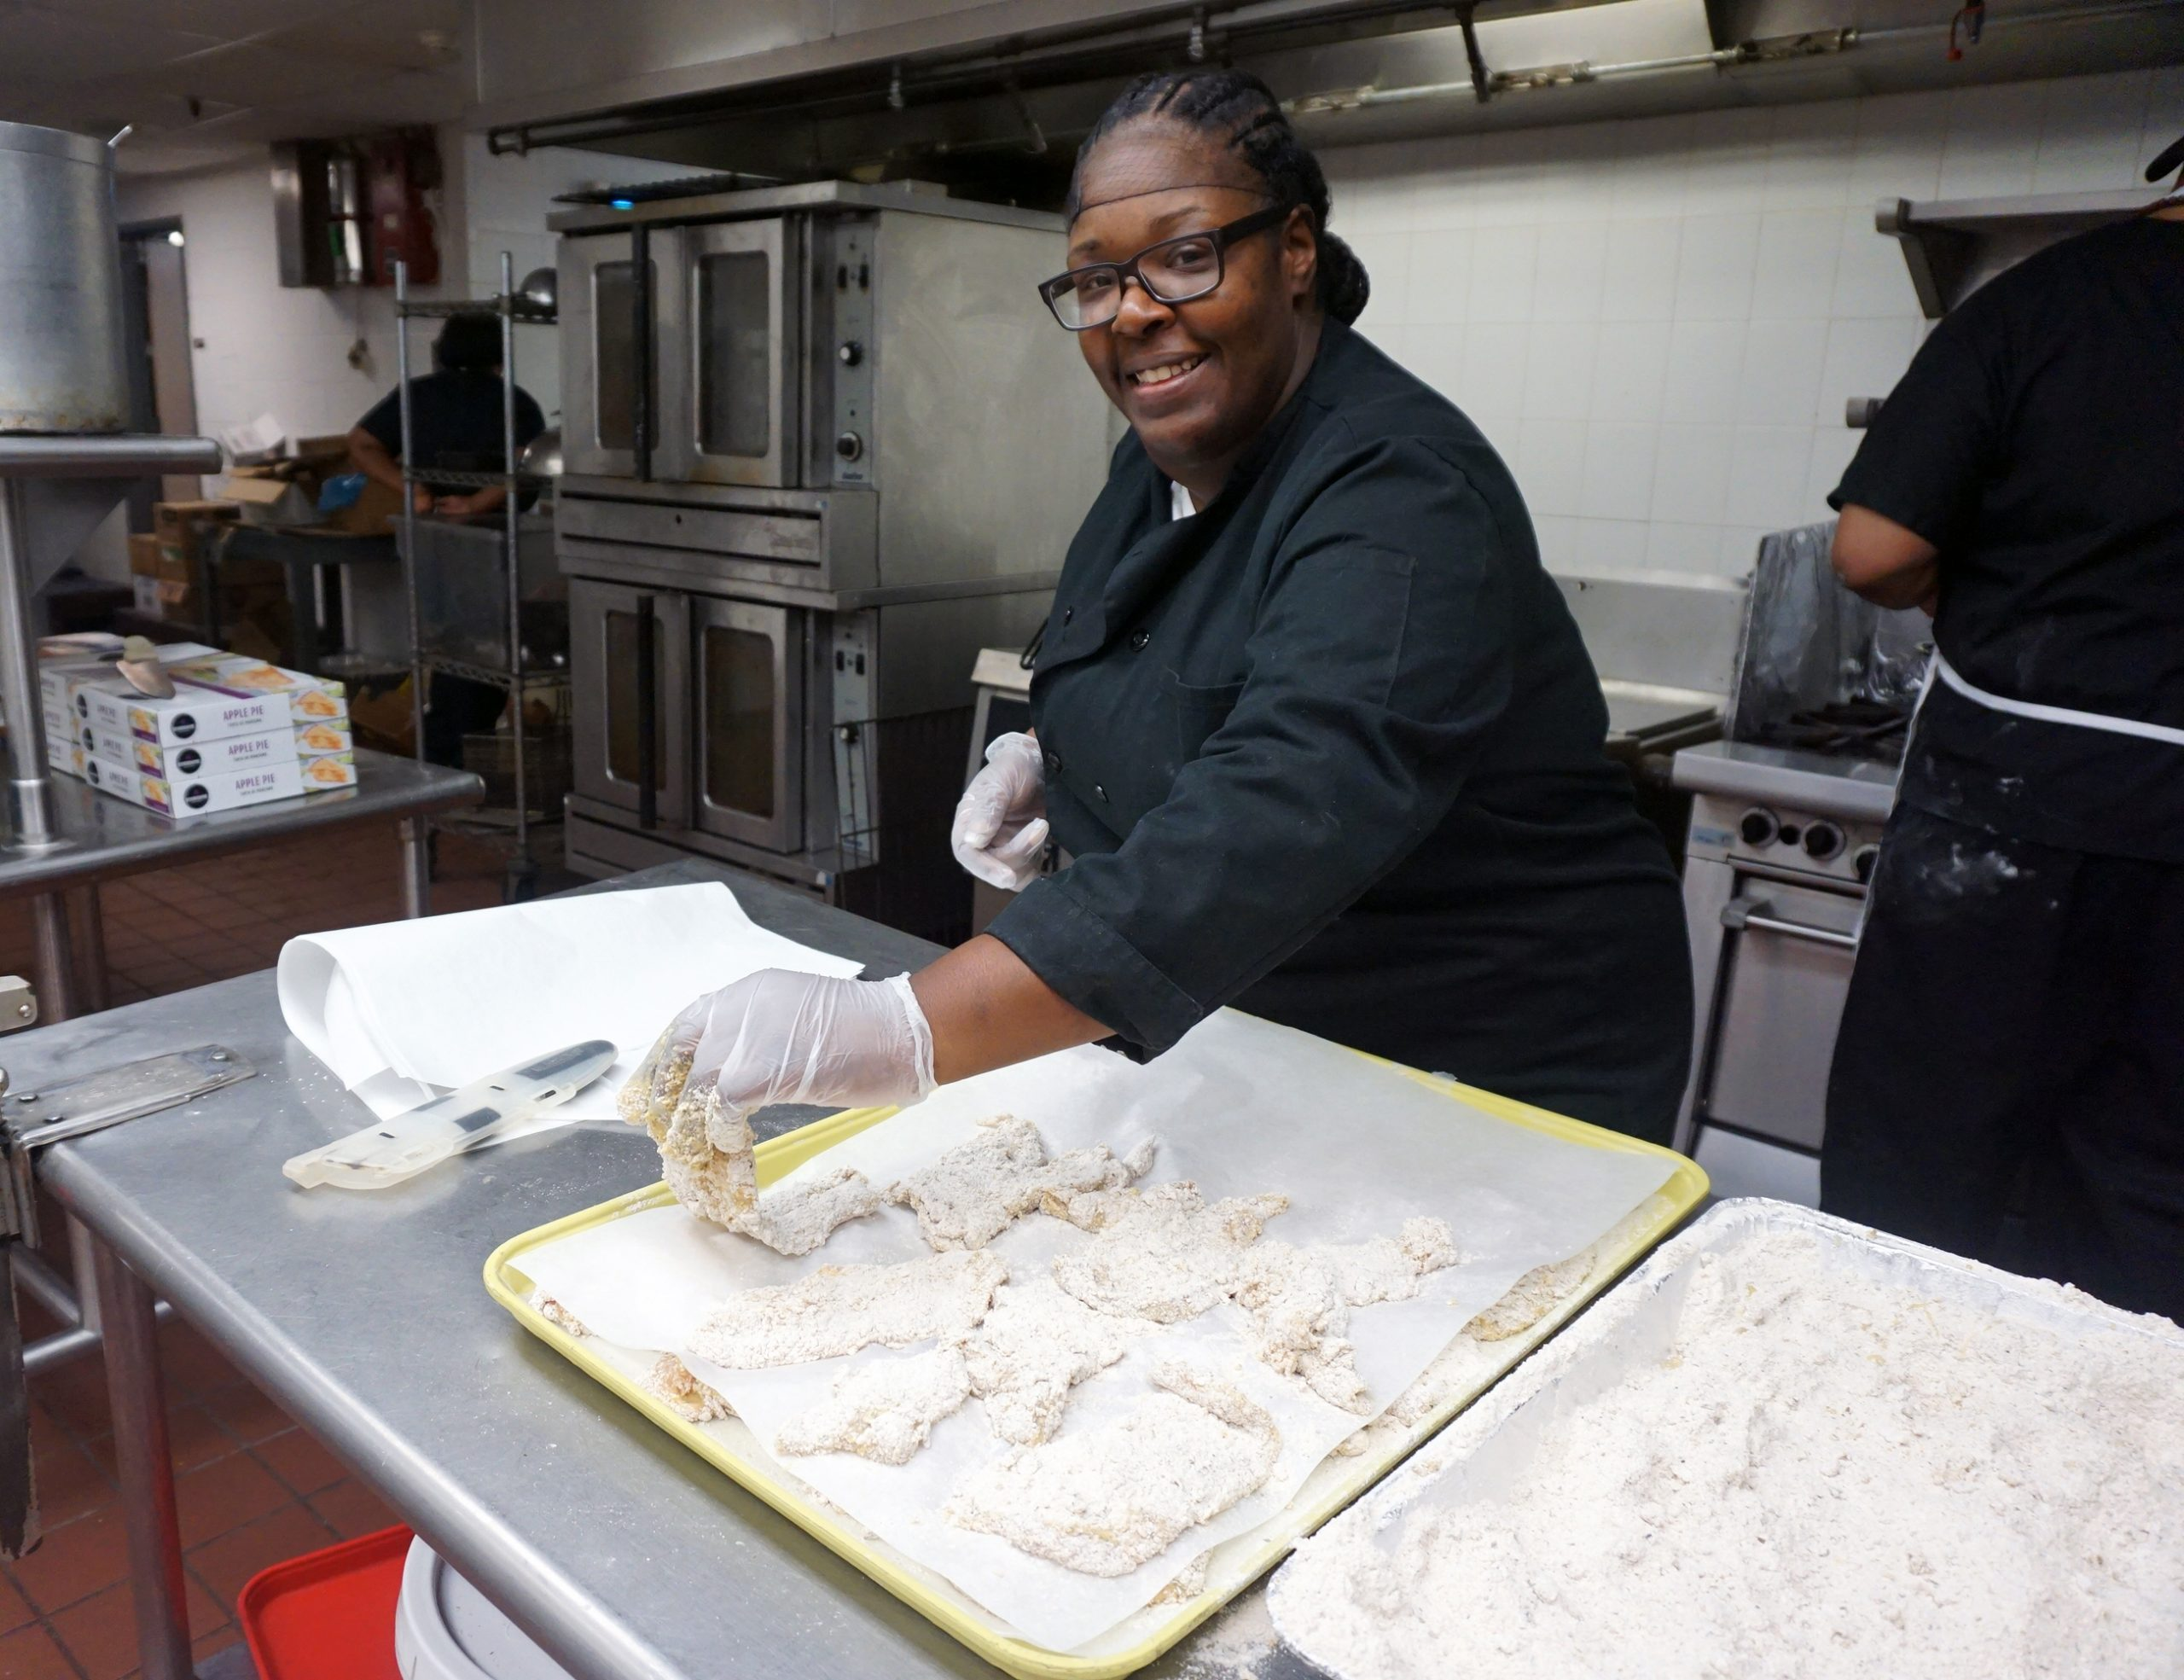 Paula Moore working in the Extended Care kitchen.